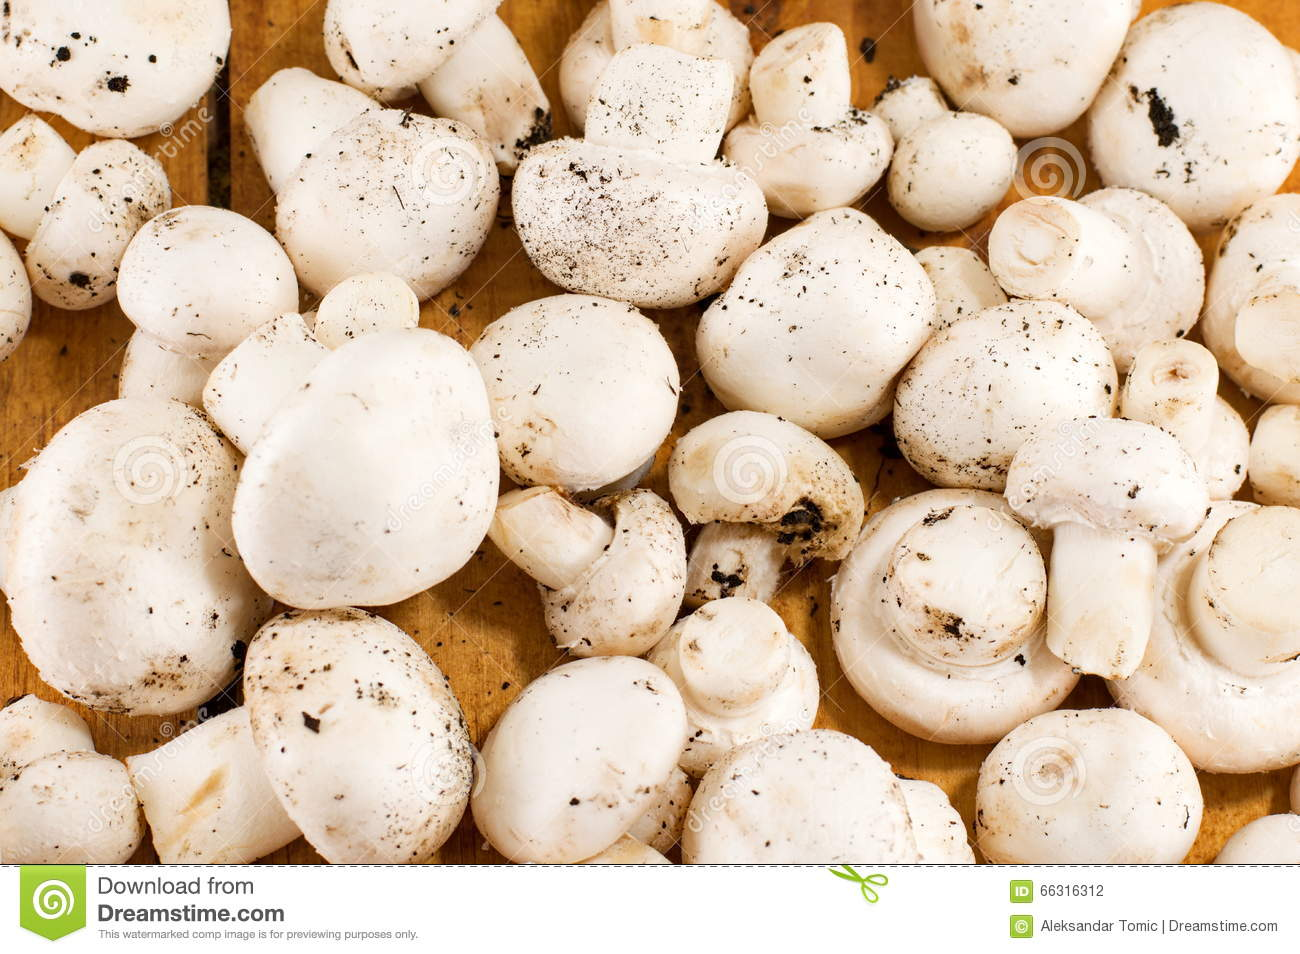 how to make wooden mushrooms